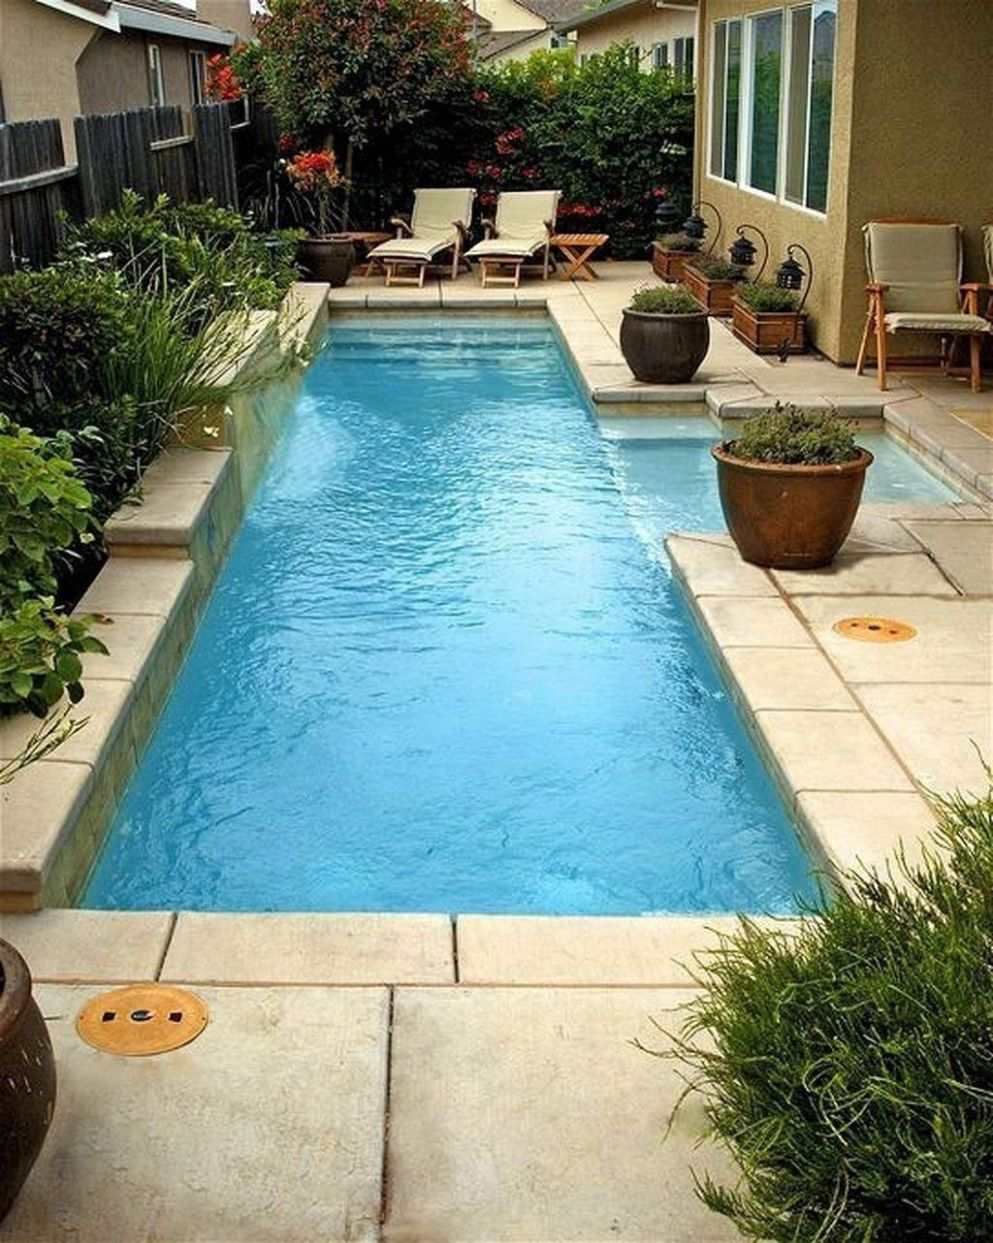 Amazing Ideas for Small Backyard Landscaping | Small backyard pools - pool ideas inground